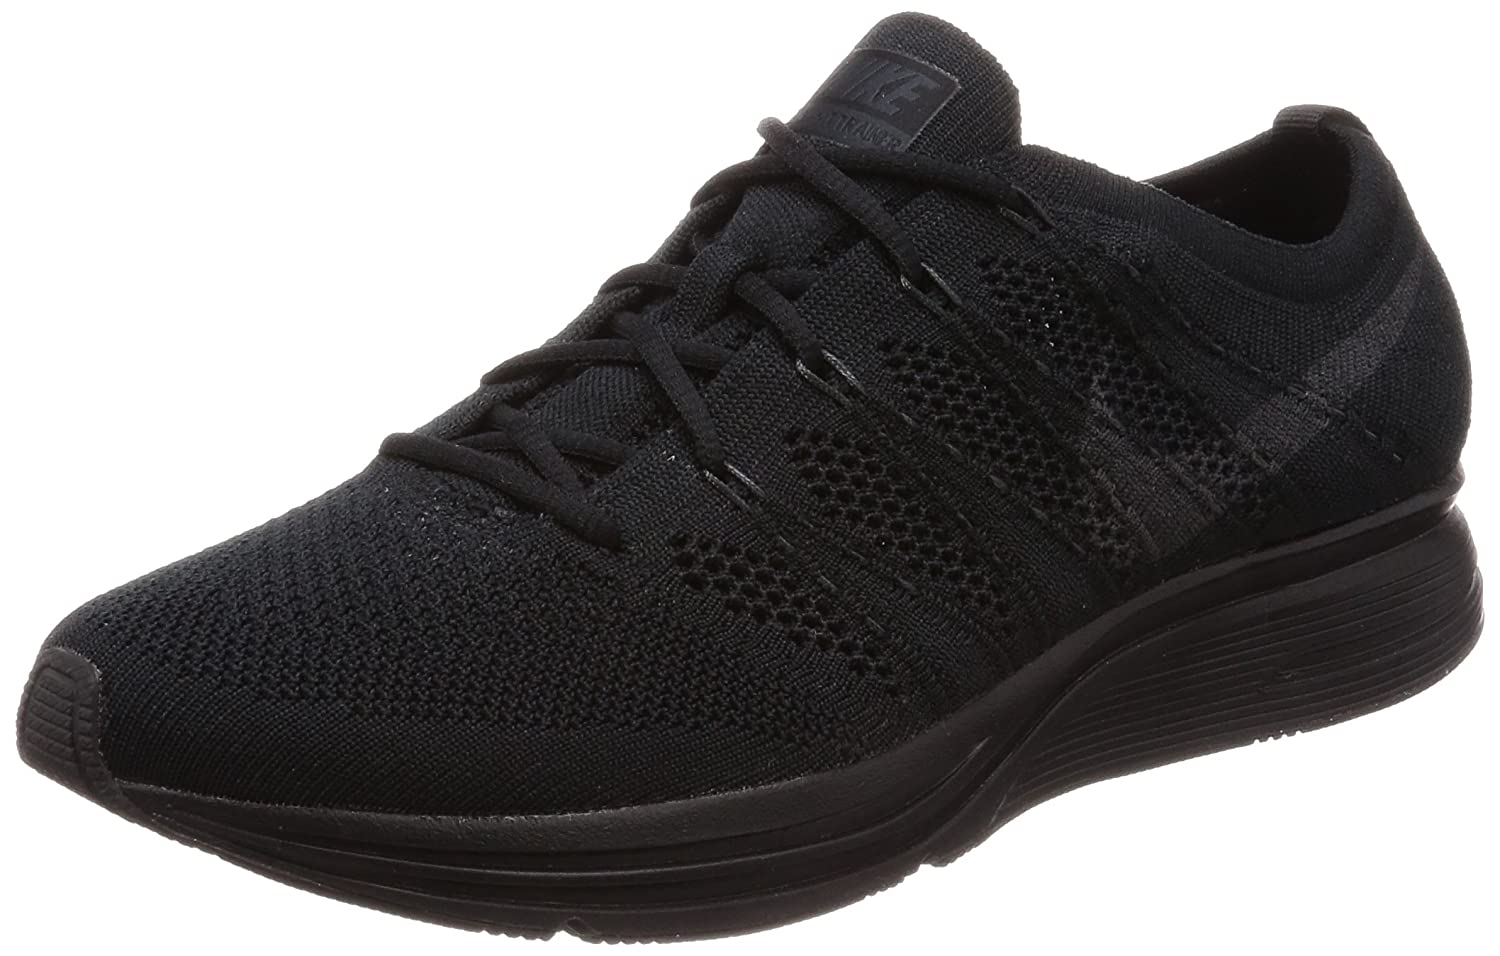 sports shoes 01697 c26f5 Amazon.com   Nike Men's Flyknit Trainer, Black/Anthracite, 10 M US    Fitness & Cross-Training